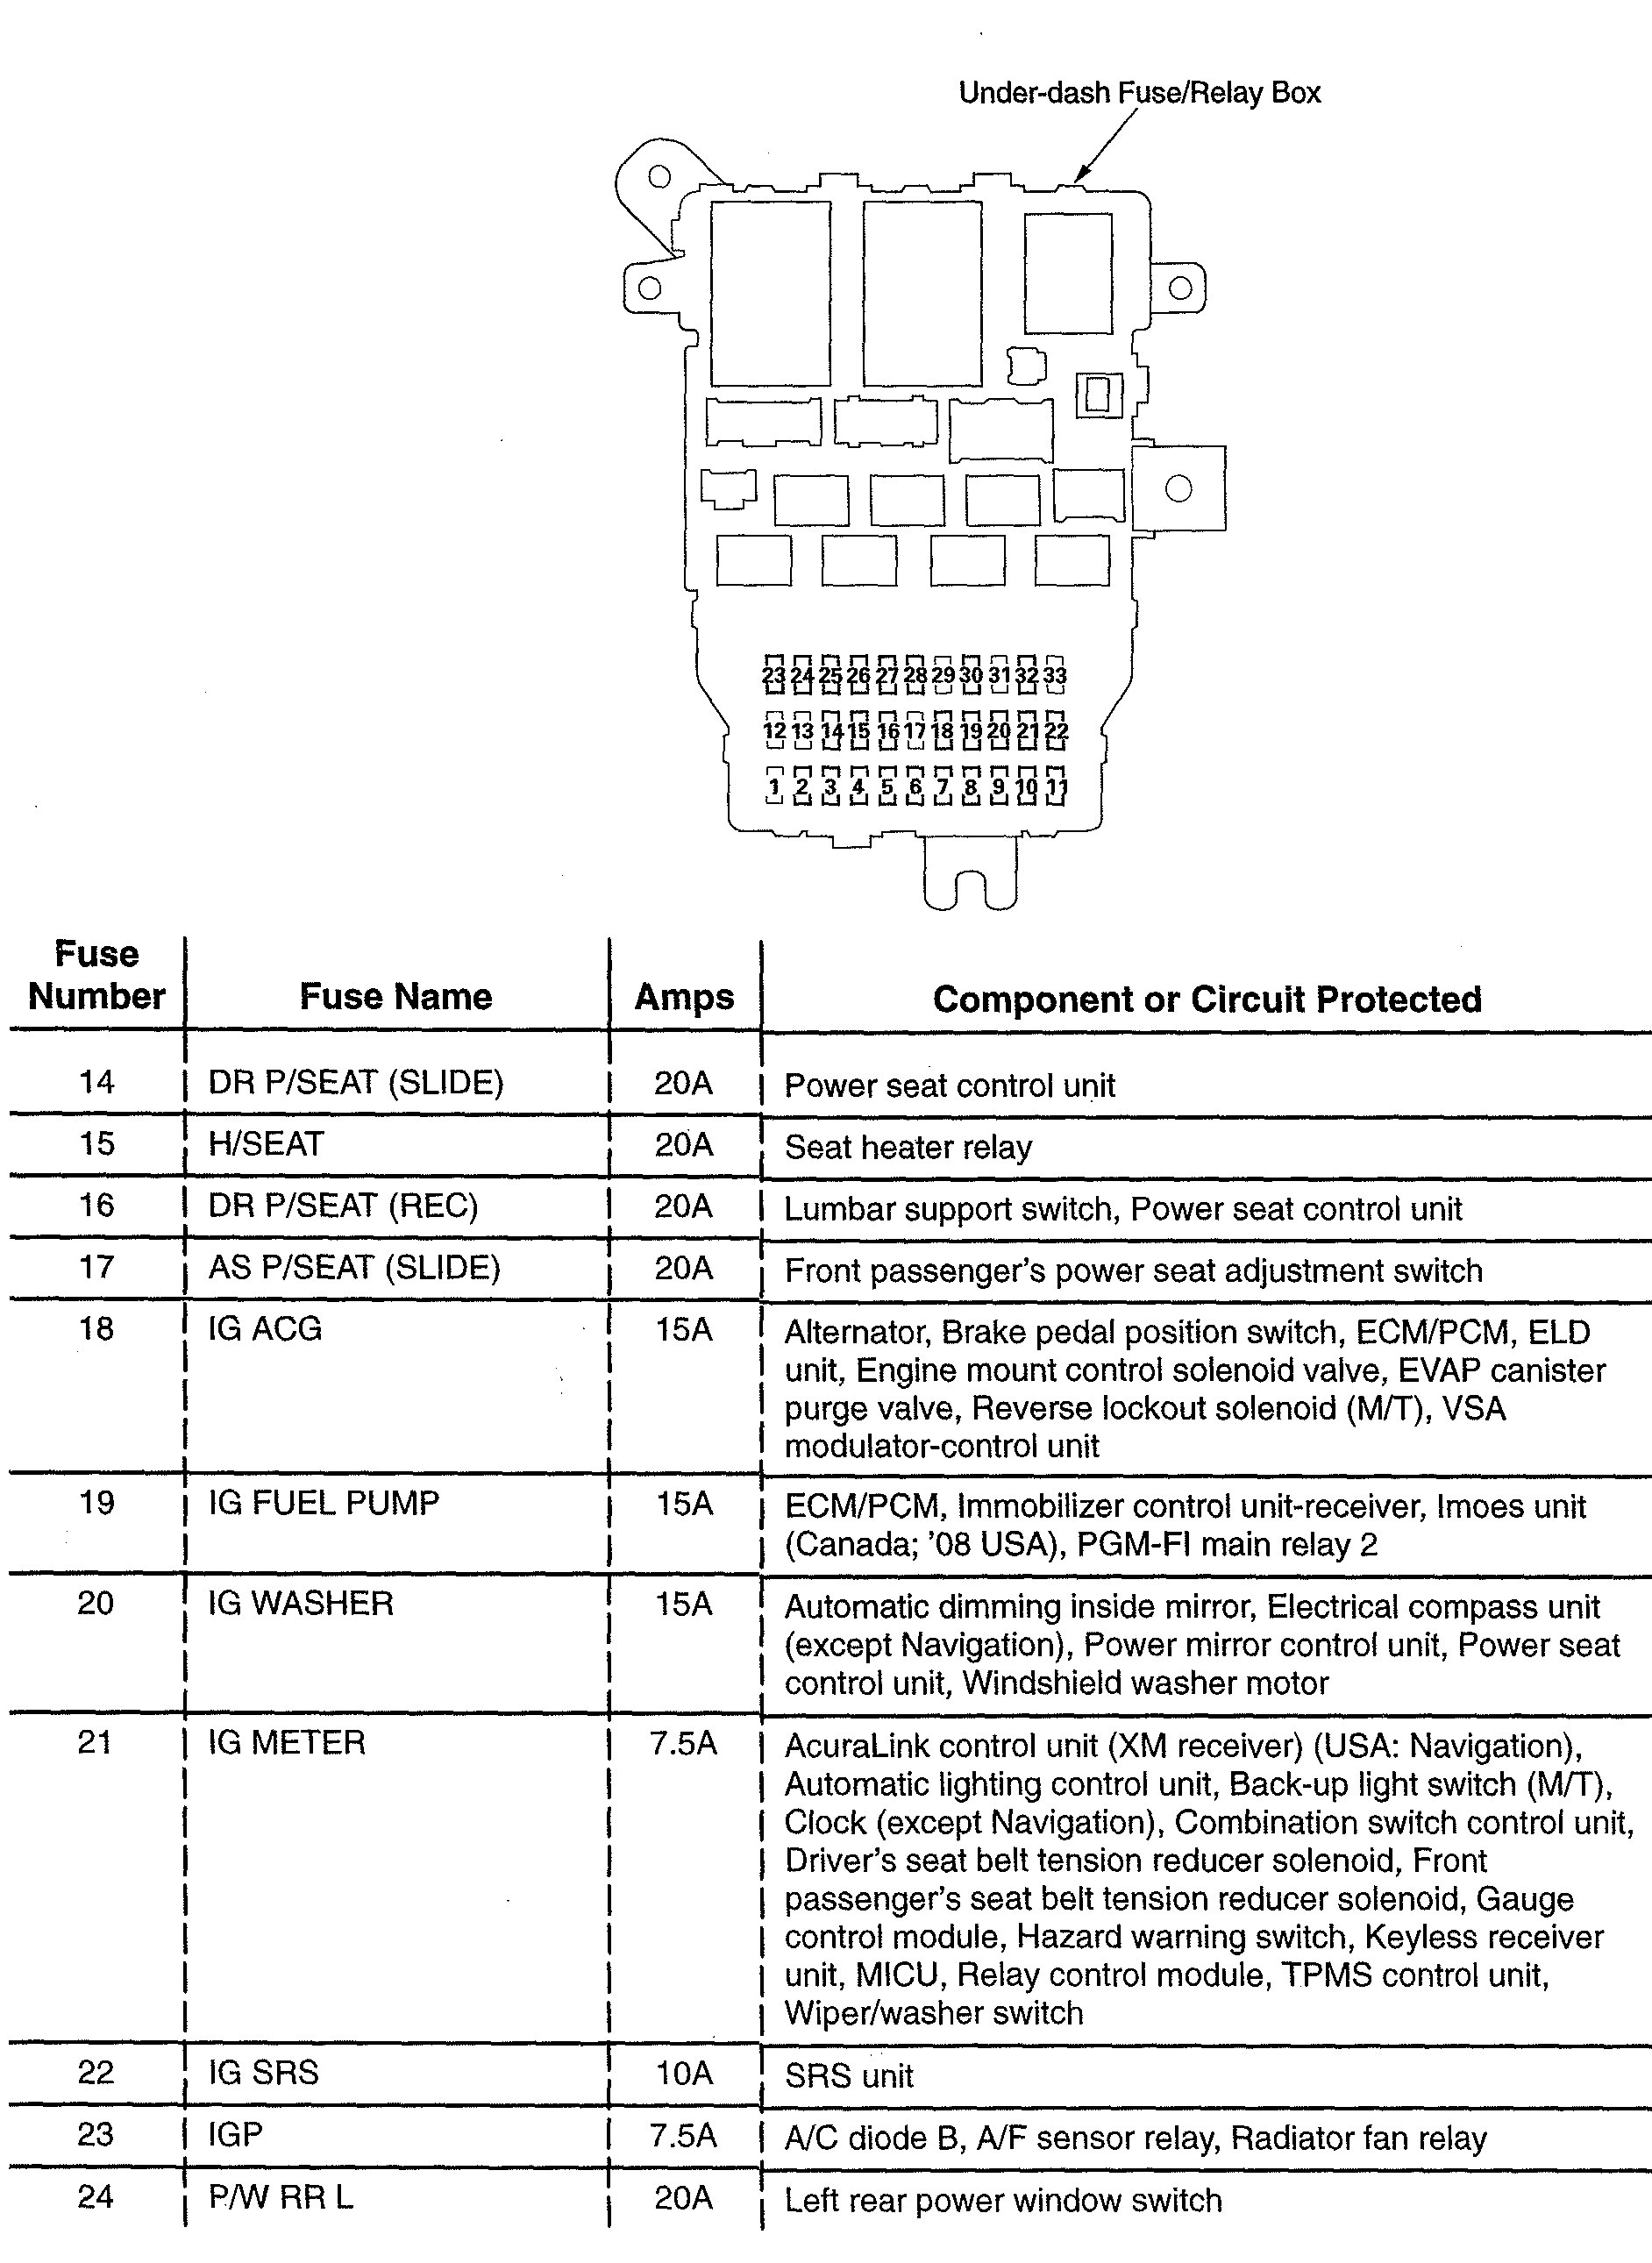 acura tl wiring diagram fuse panel 2 2008 acura tl (2008) wiring diagrams fuse panel carknowledge 2007 acura tl wiring diagram at arjmand.co